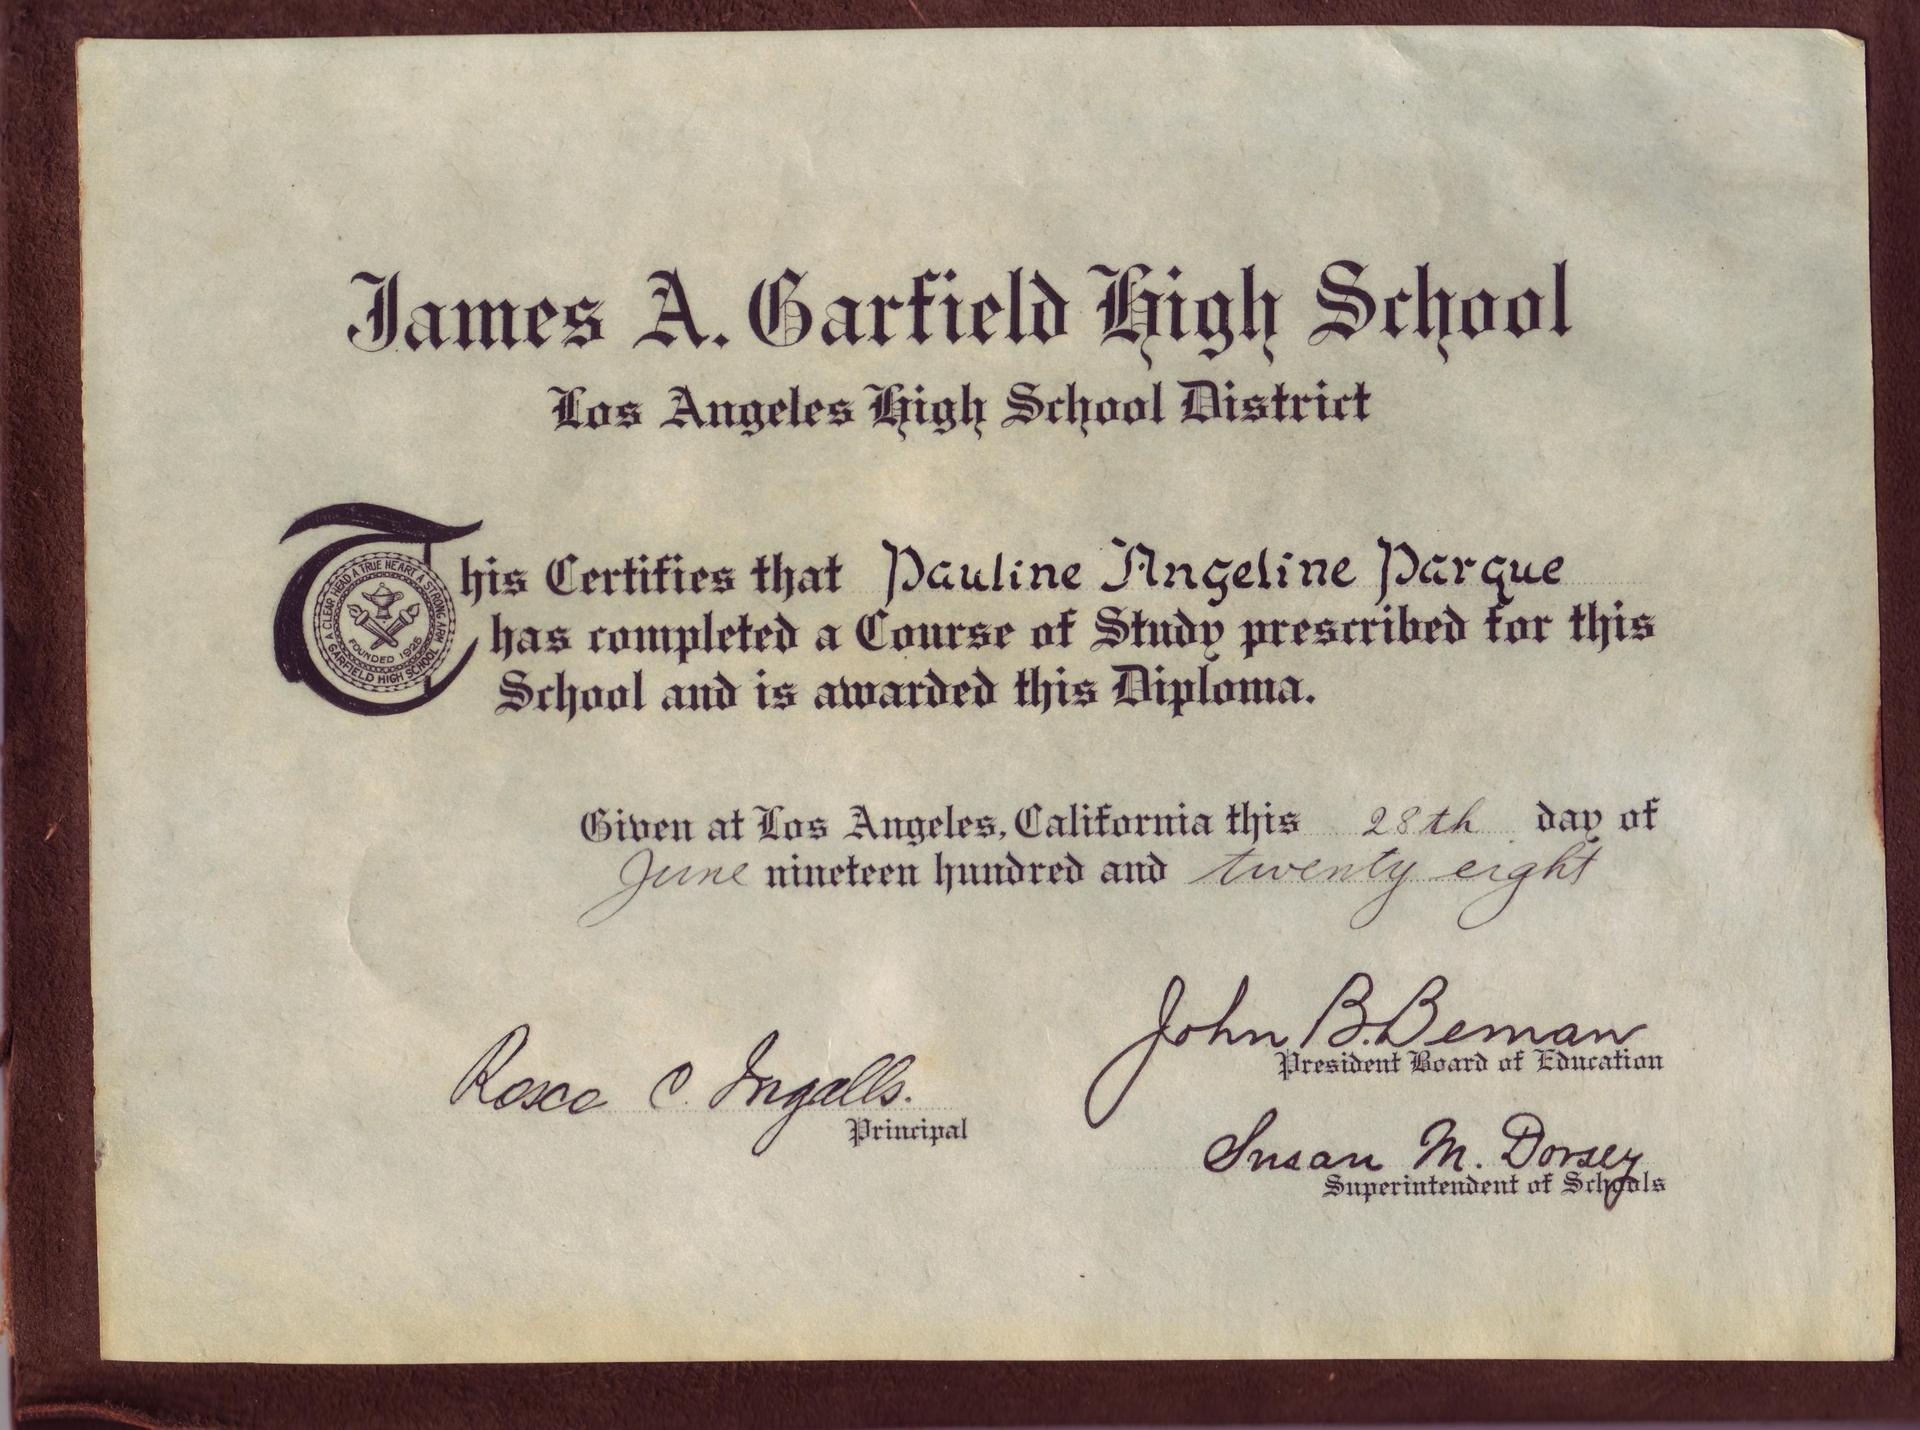 1928 Diploma from Garfield